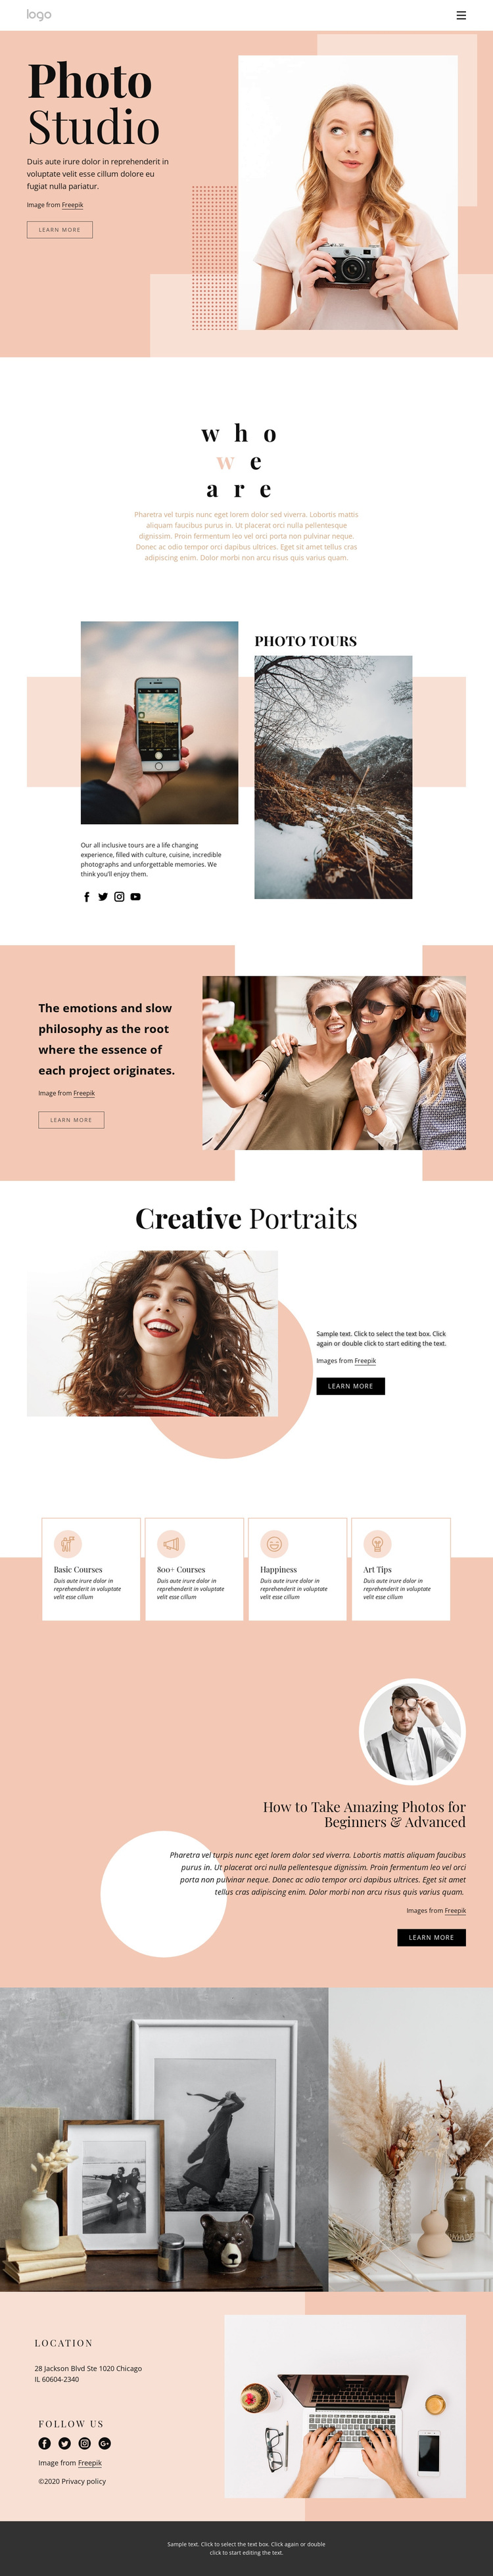 Photography courses Joomla Page Builder